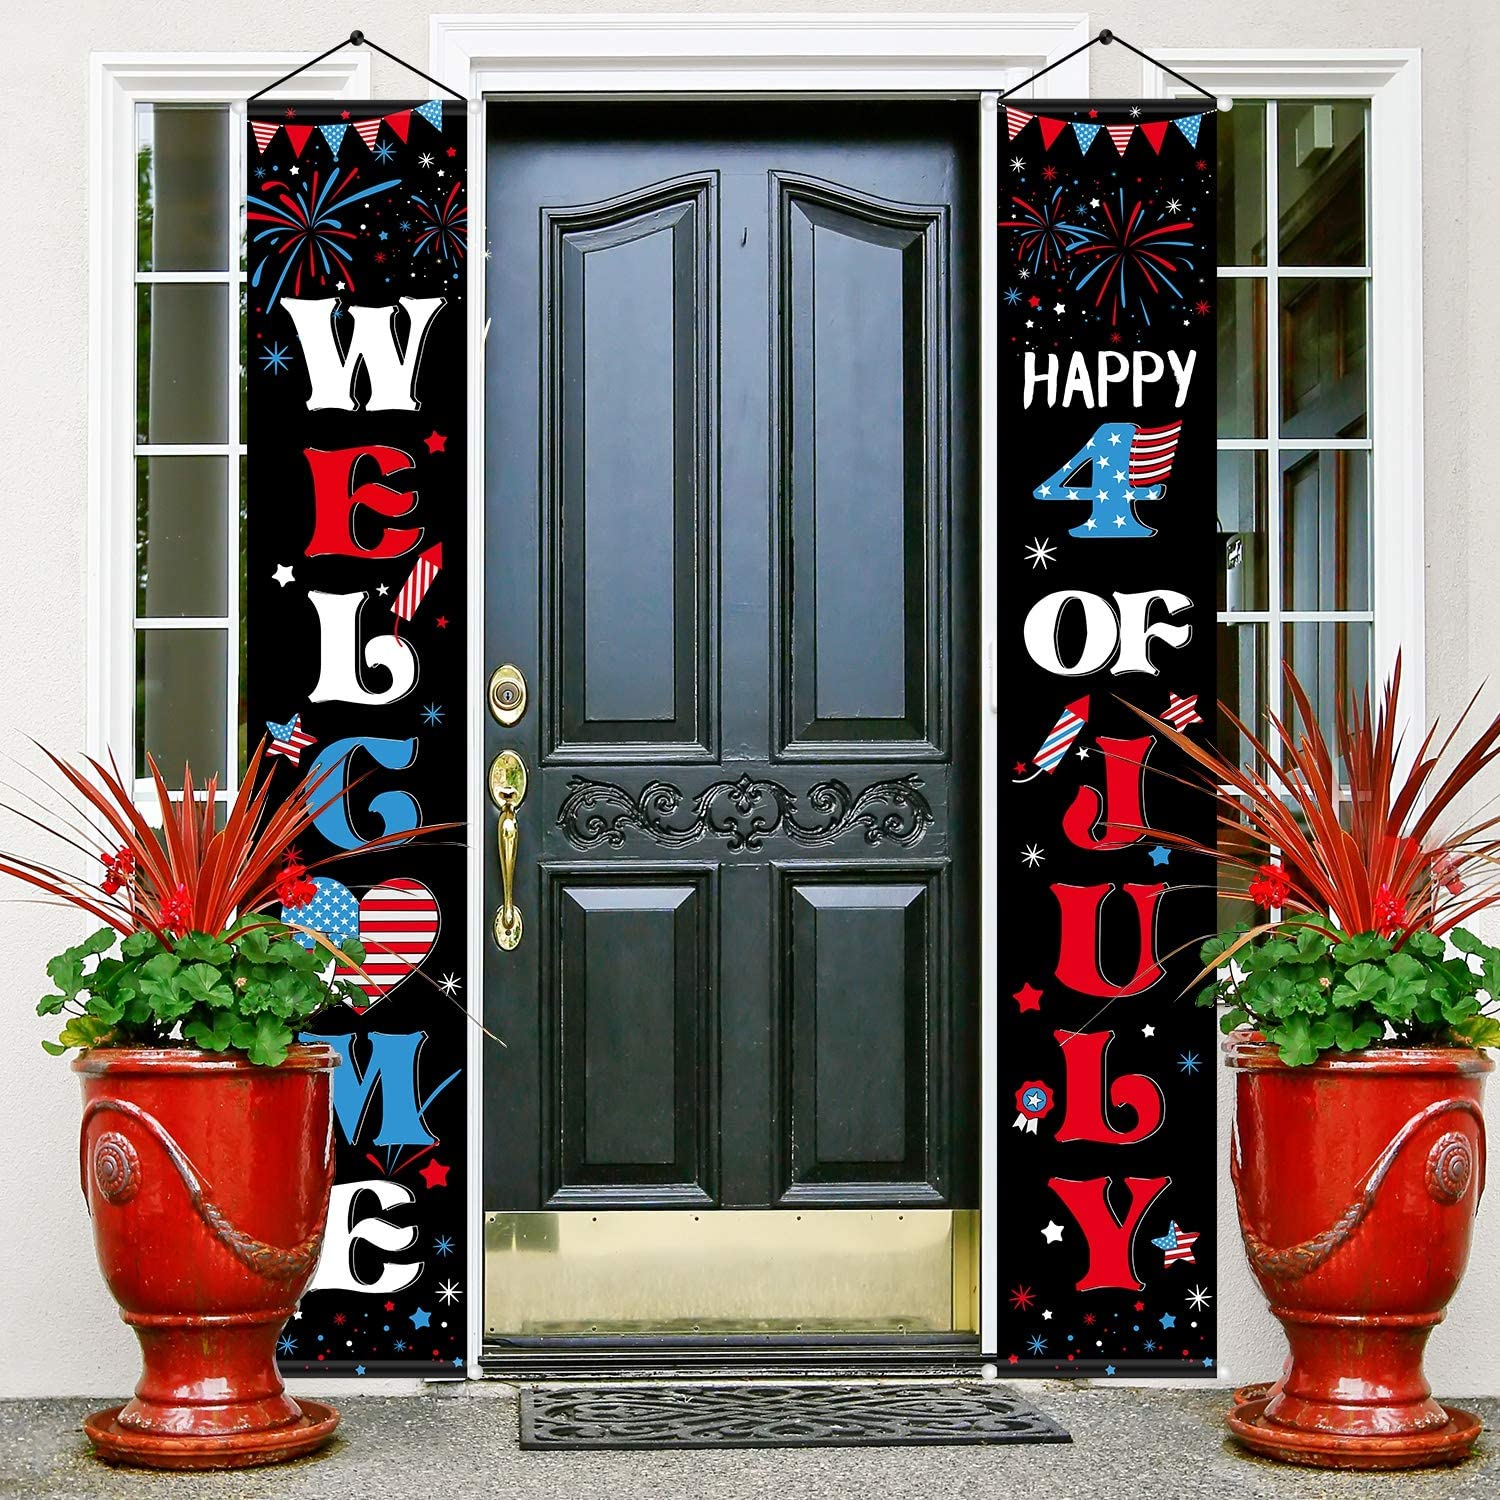 Patriotic Decoration Porch Sign Independence Day Party Stars and Stripes Pattern Welcome Banner Hanging Signs Set for Indoor Outdoor Memorial Day 4th of July Party Decorations (Black)